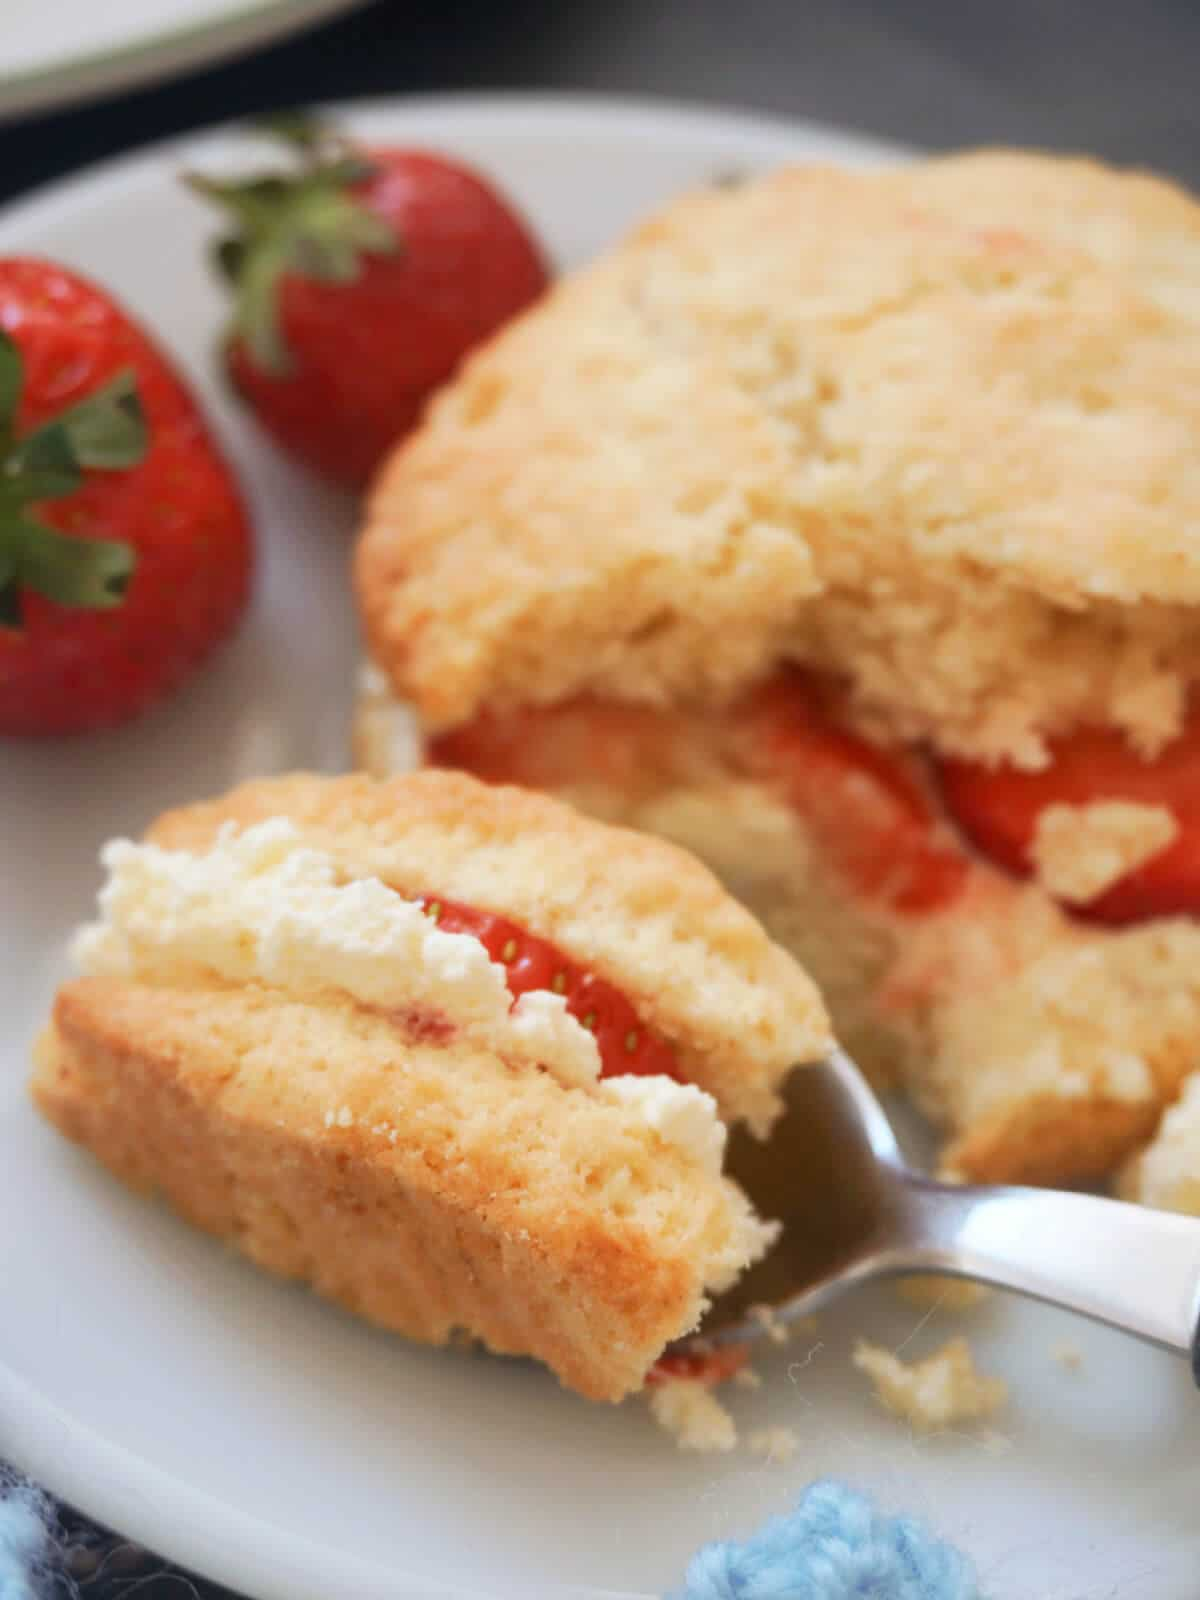 Close-up shot of a shortcake with cream and strawberries